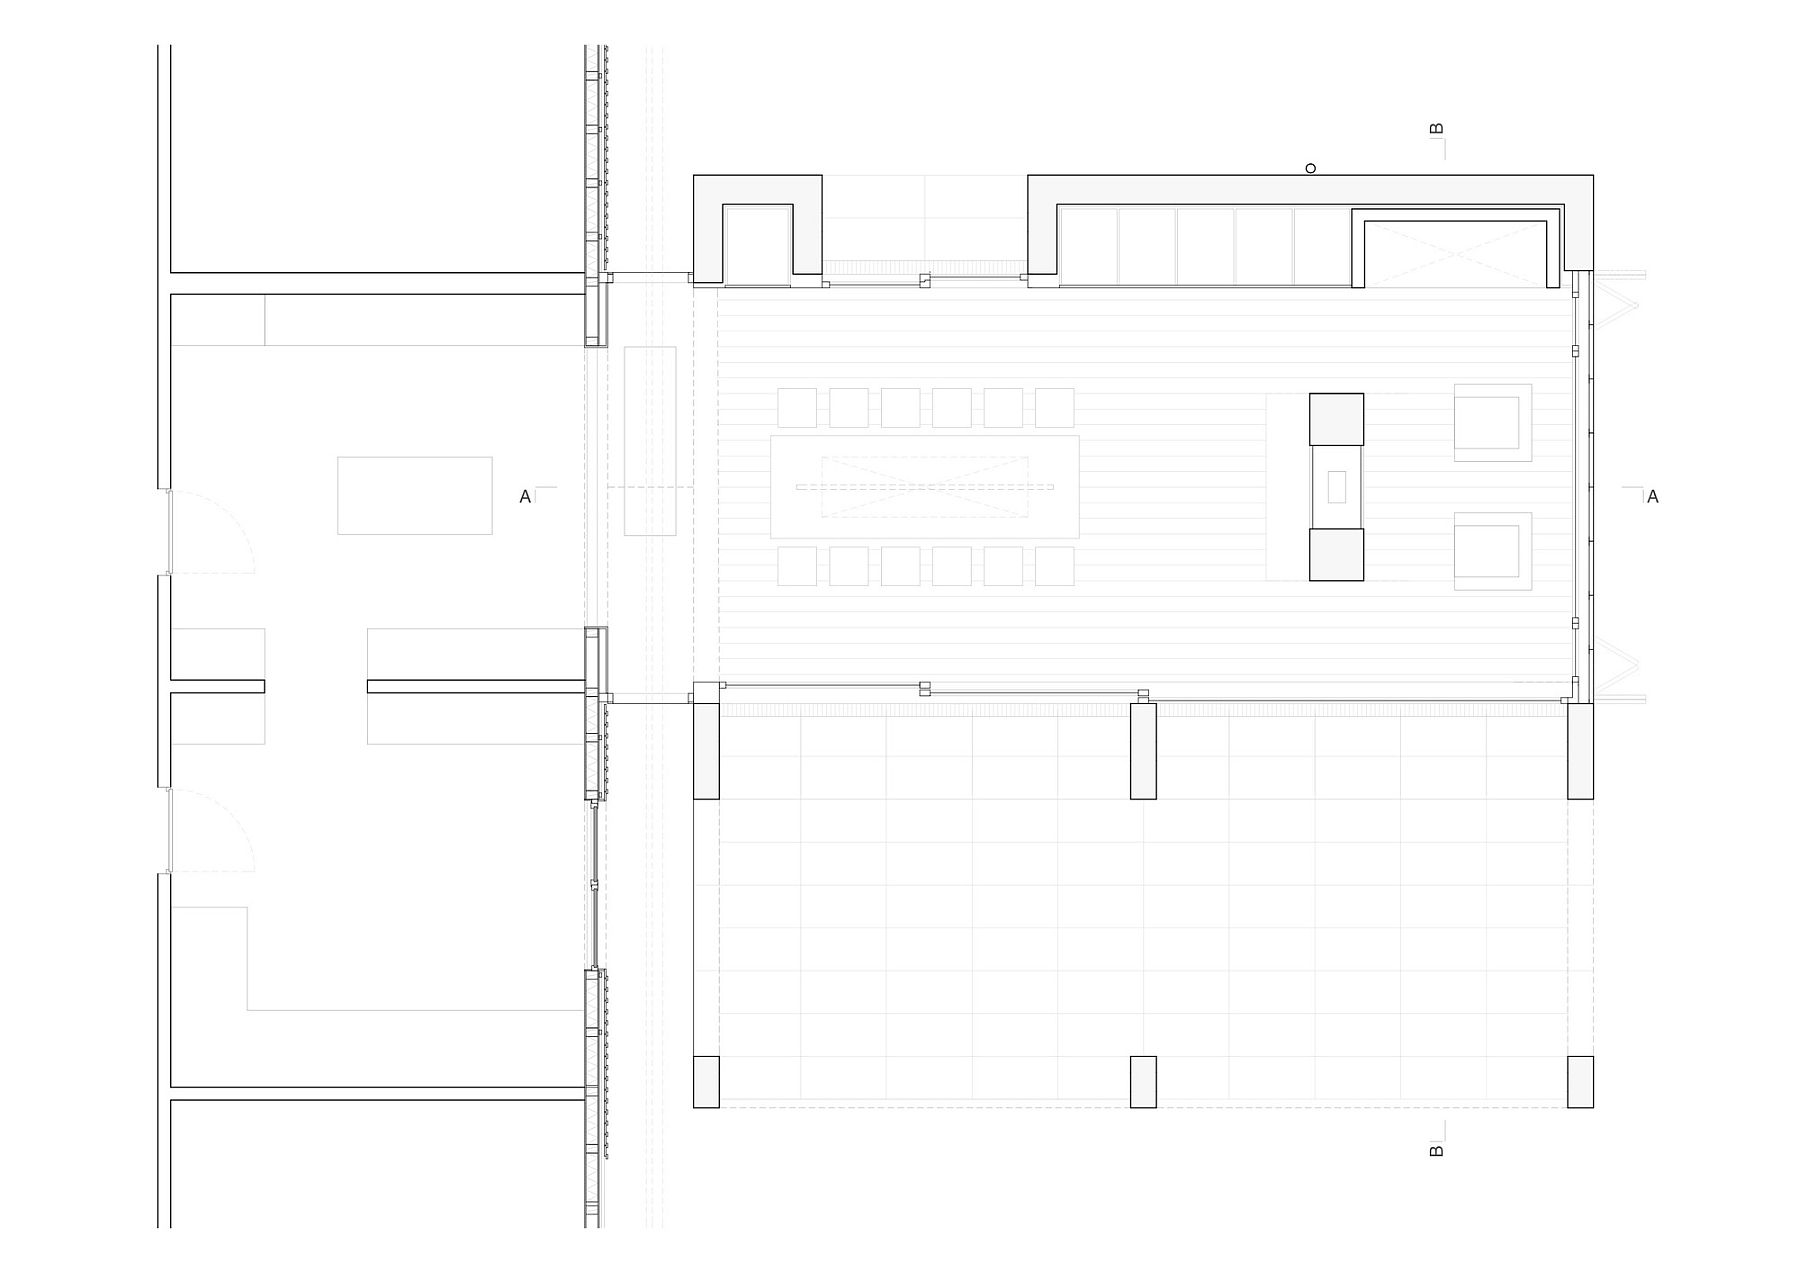 Floor plan of the contemporary extension to tomber house in Leipzig, Germany